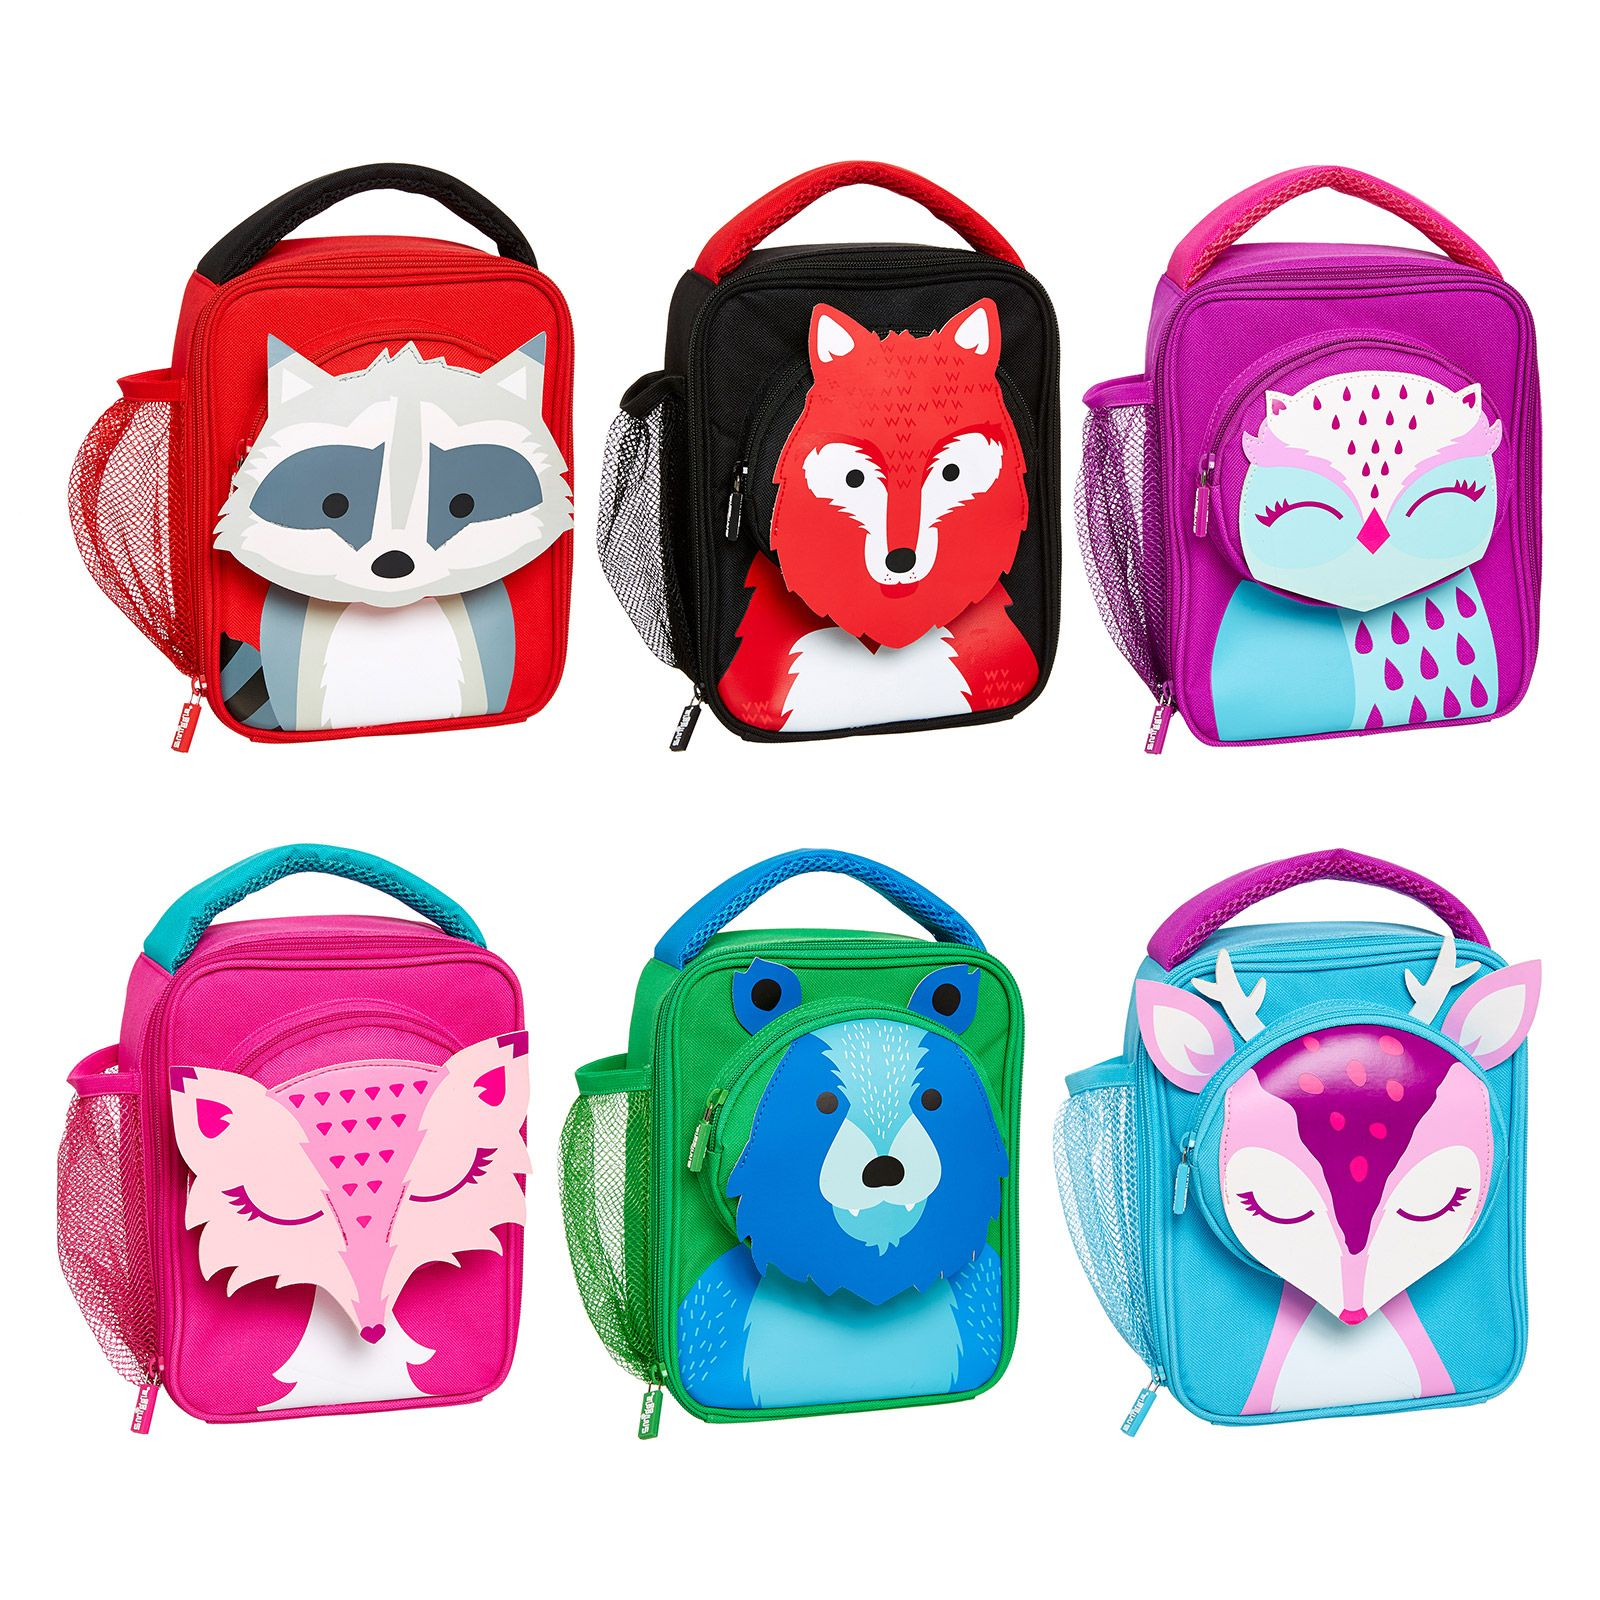 woodlands 3d lunchbox smiggle cute products pinterest